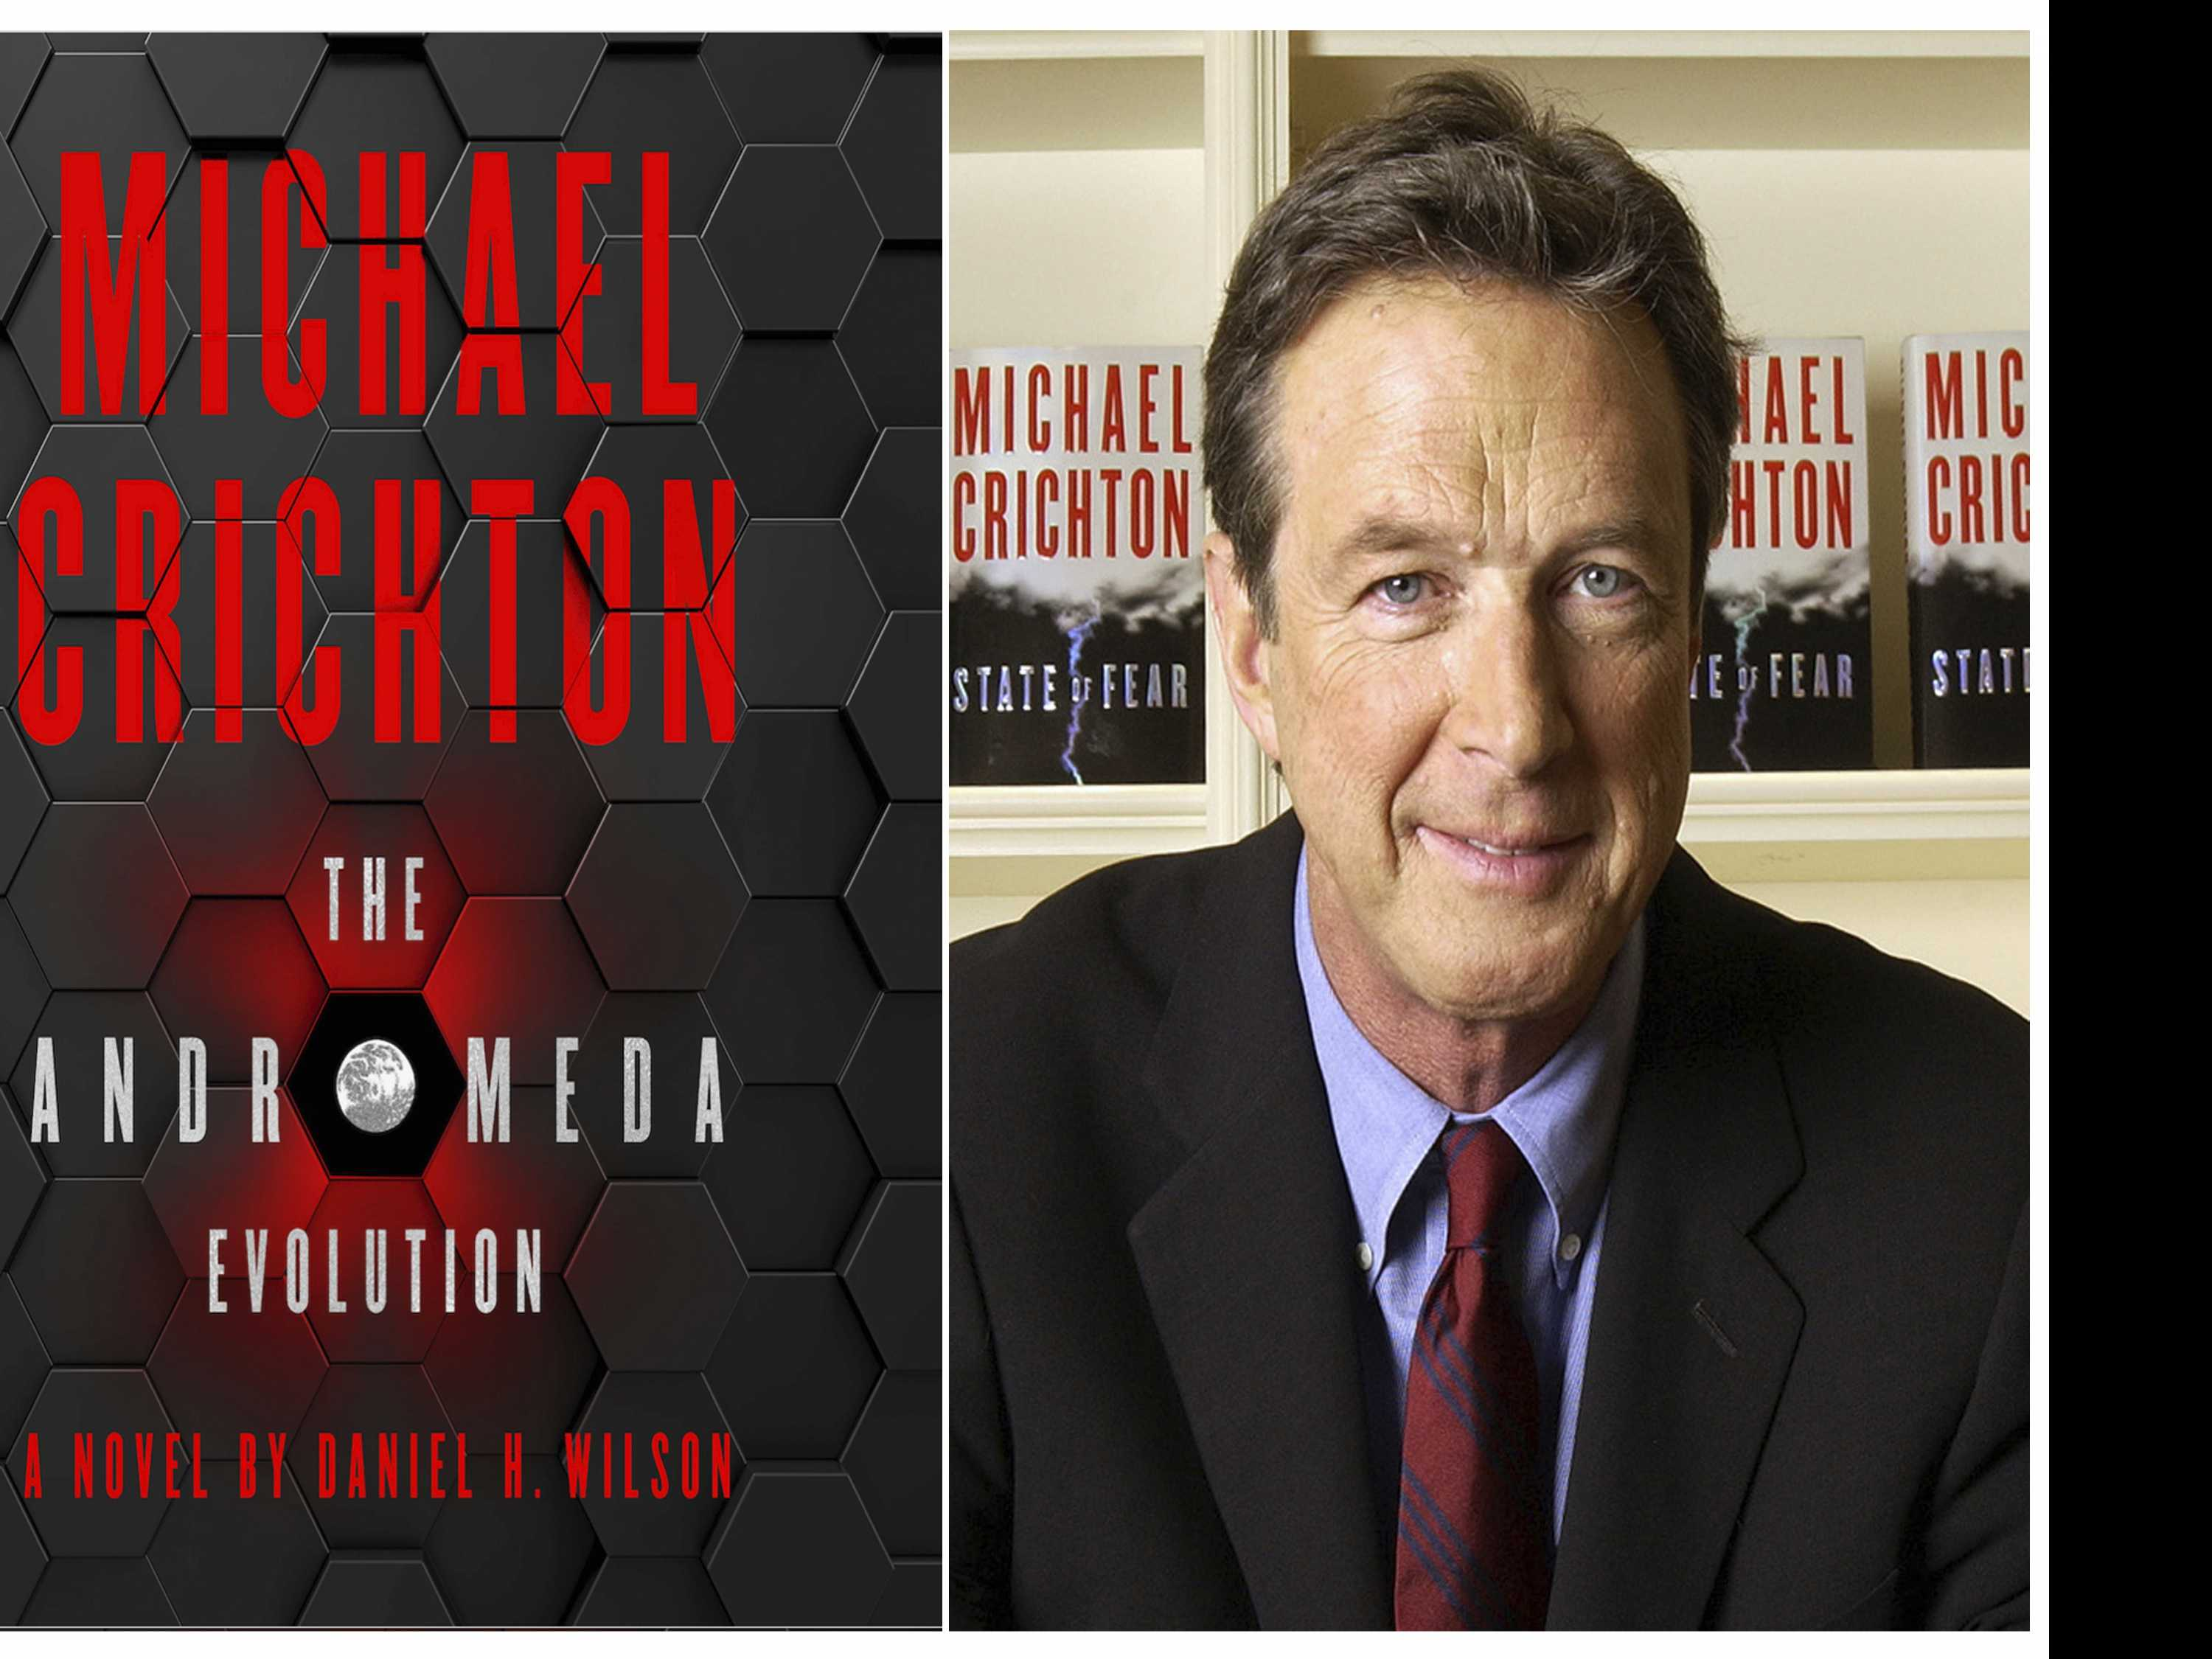 Sequel to Michael Crichton's 'Andromeda Strain' Due in Fall